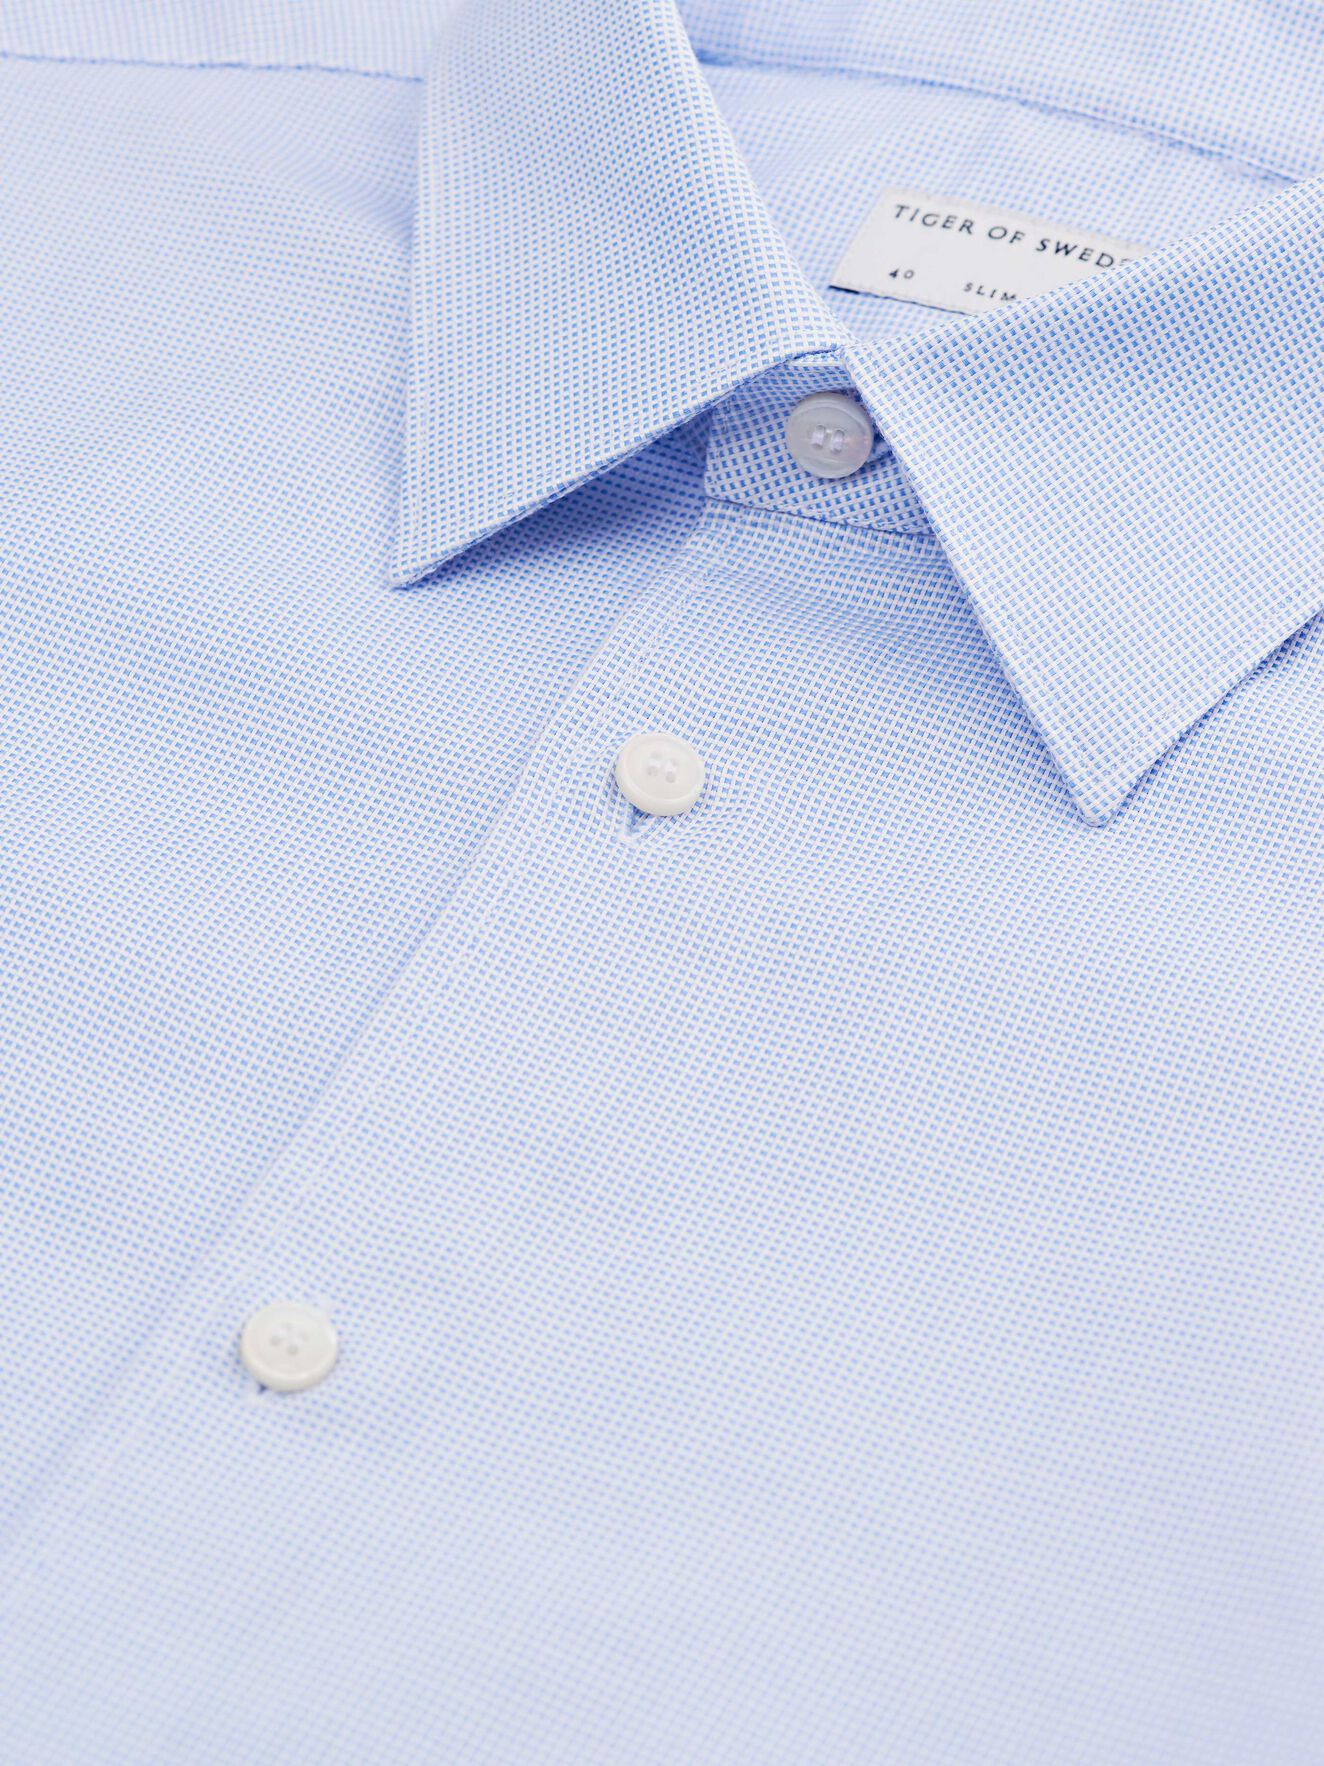 Farrell Shirt in Dust blue from Tiger of Sweden